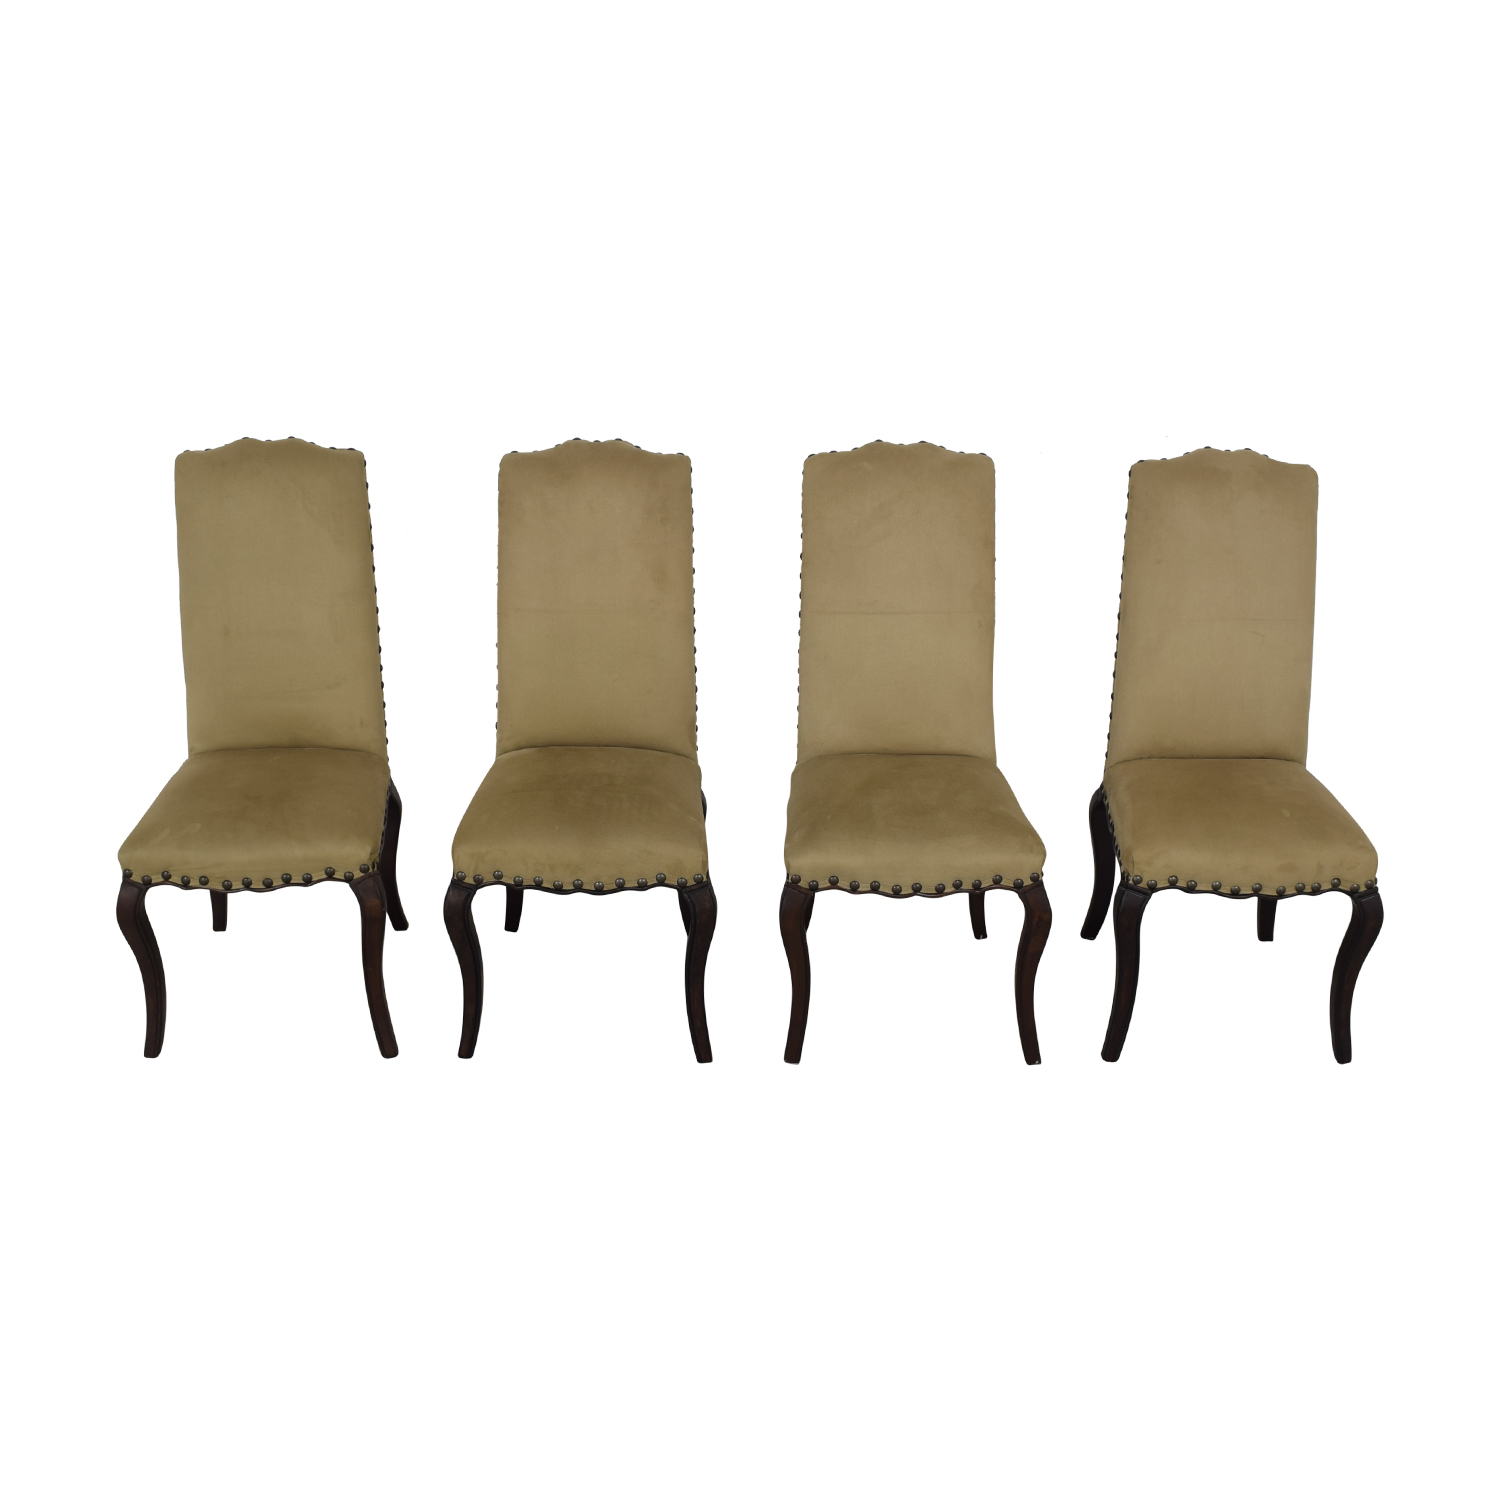 Pottery Barn Pottery Barn Calais Dining Chairs Dining Chairs